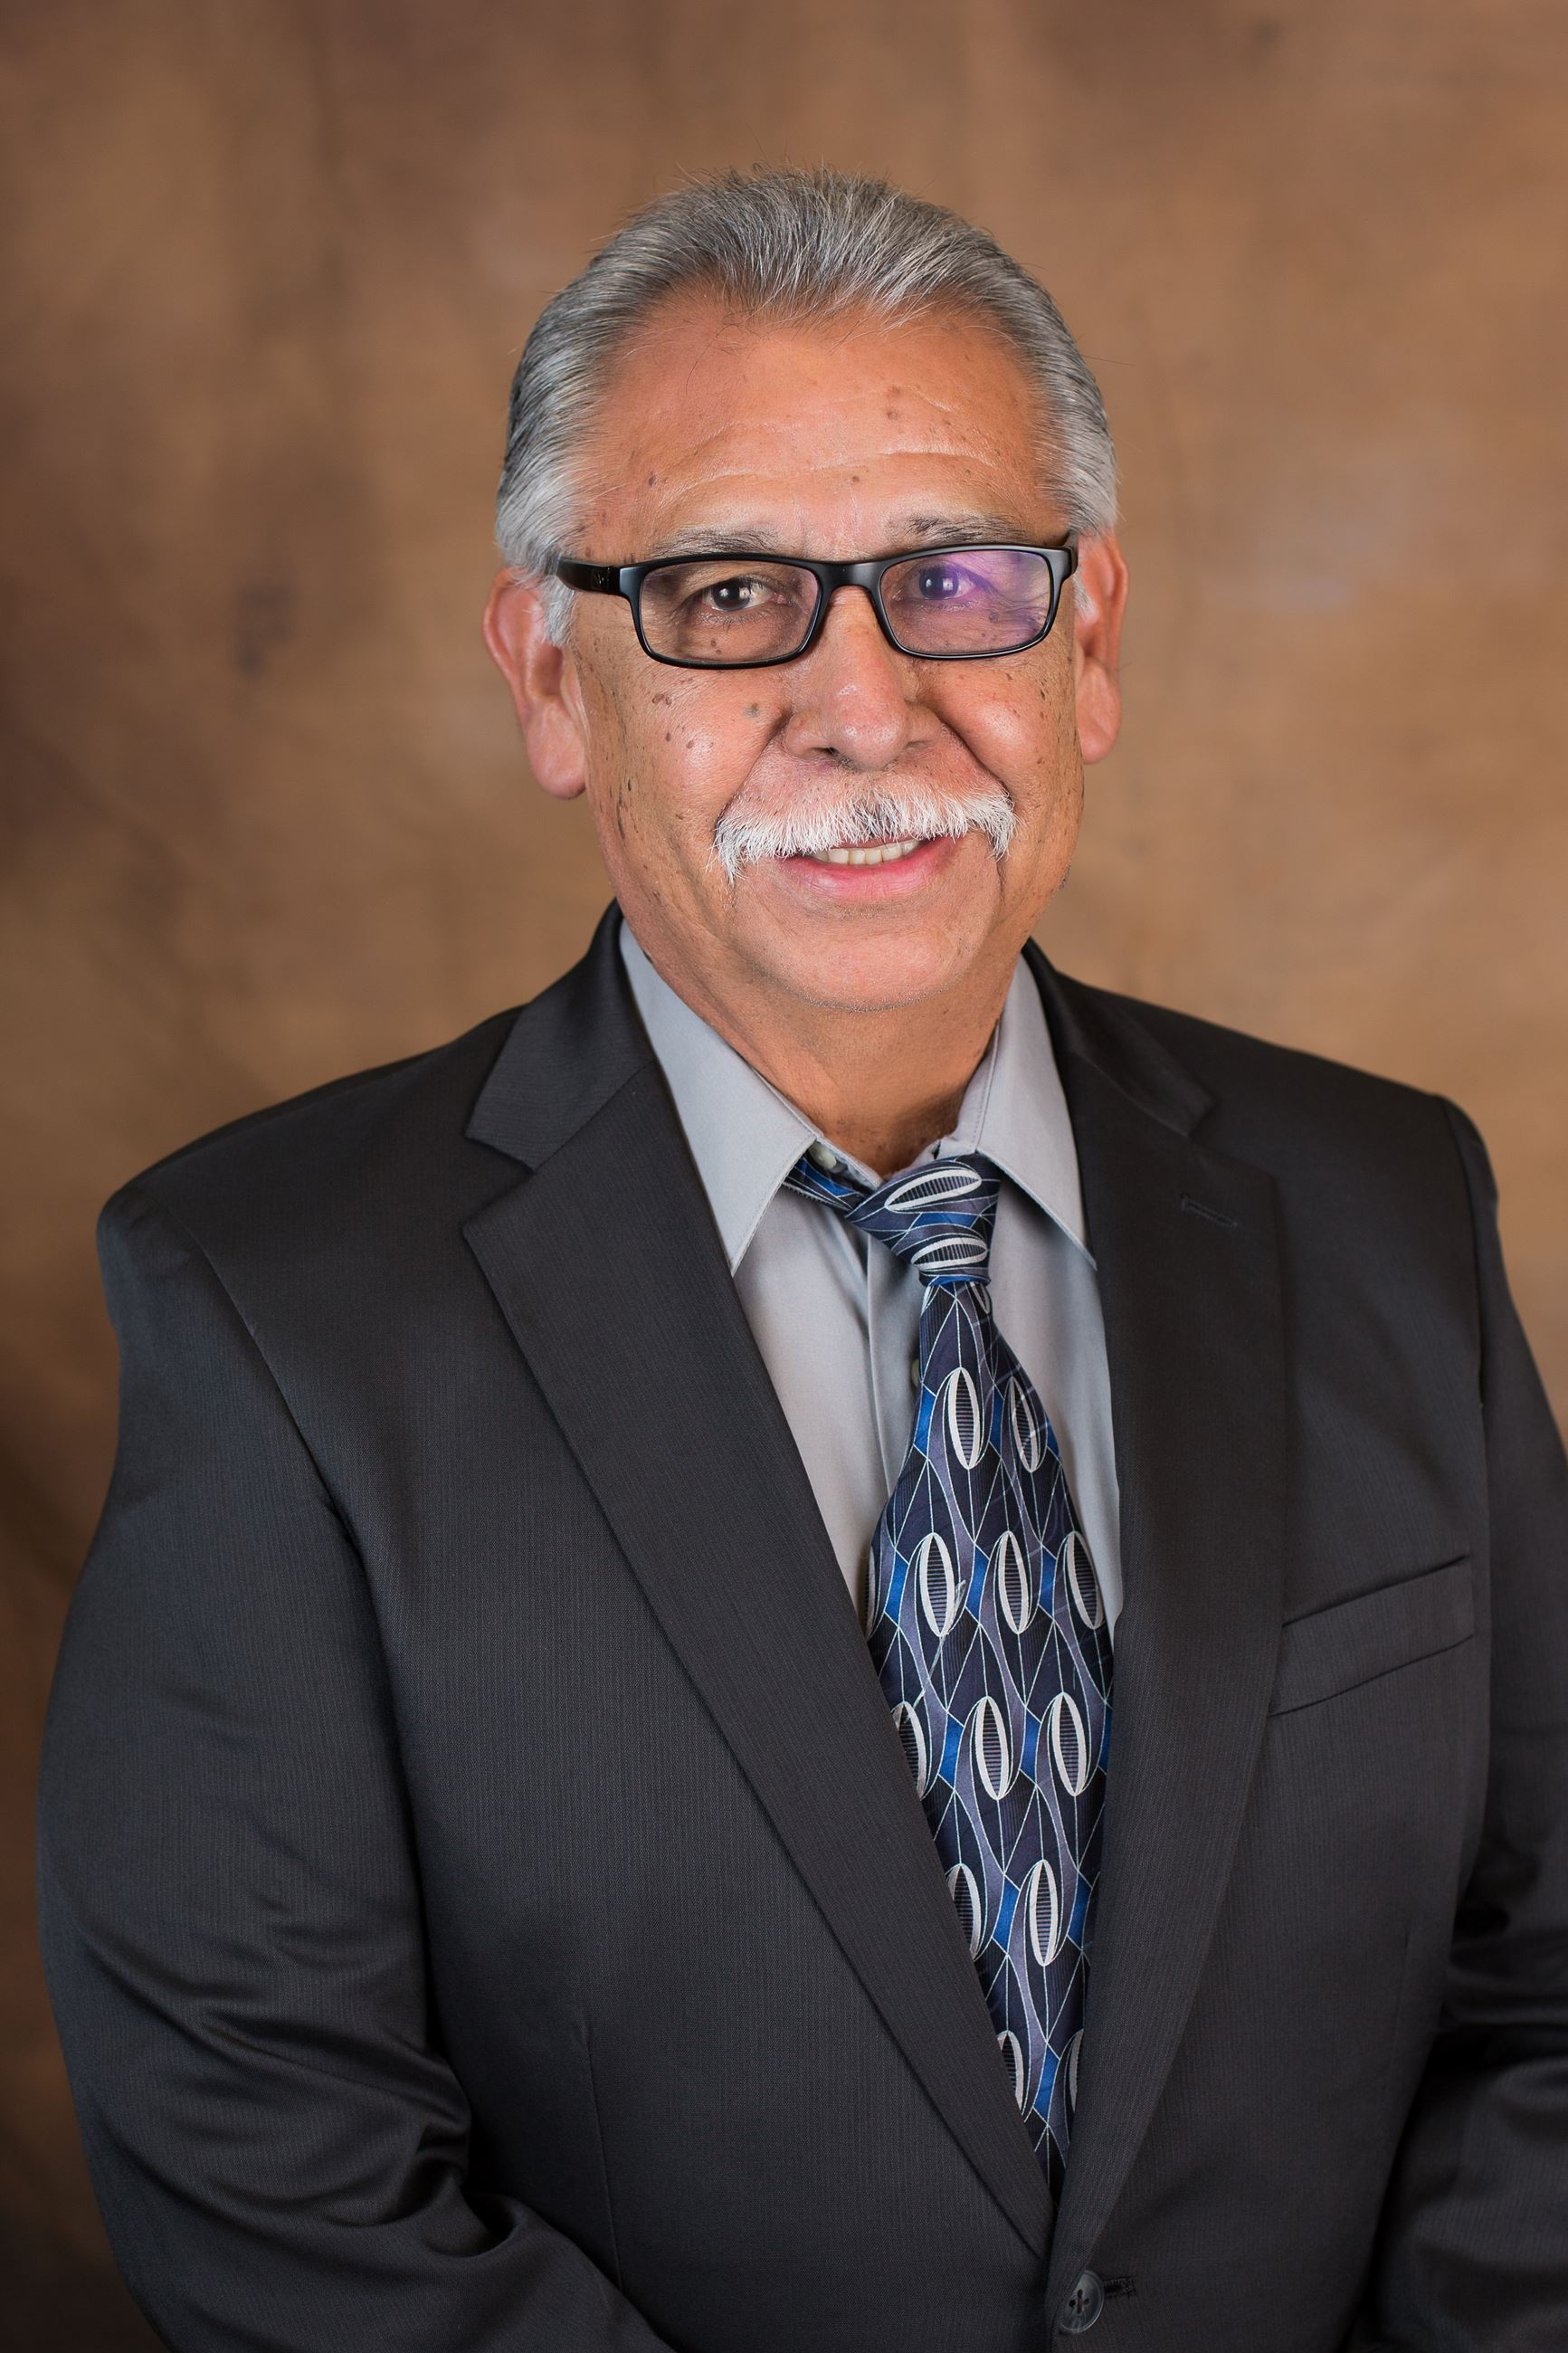 Council Member Albert Mendoza